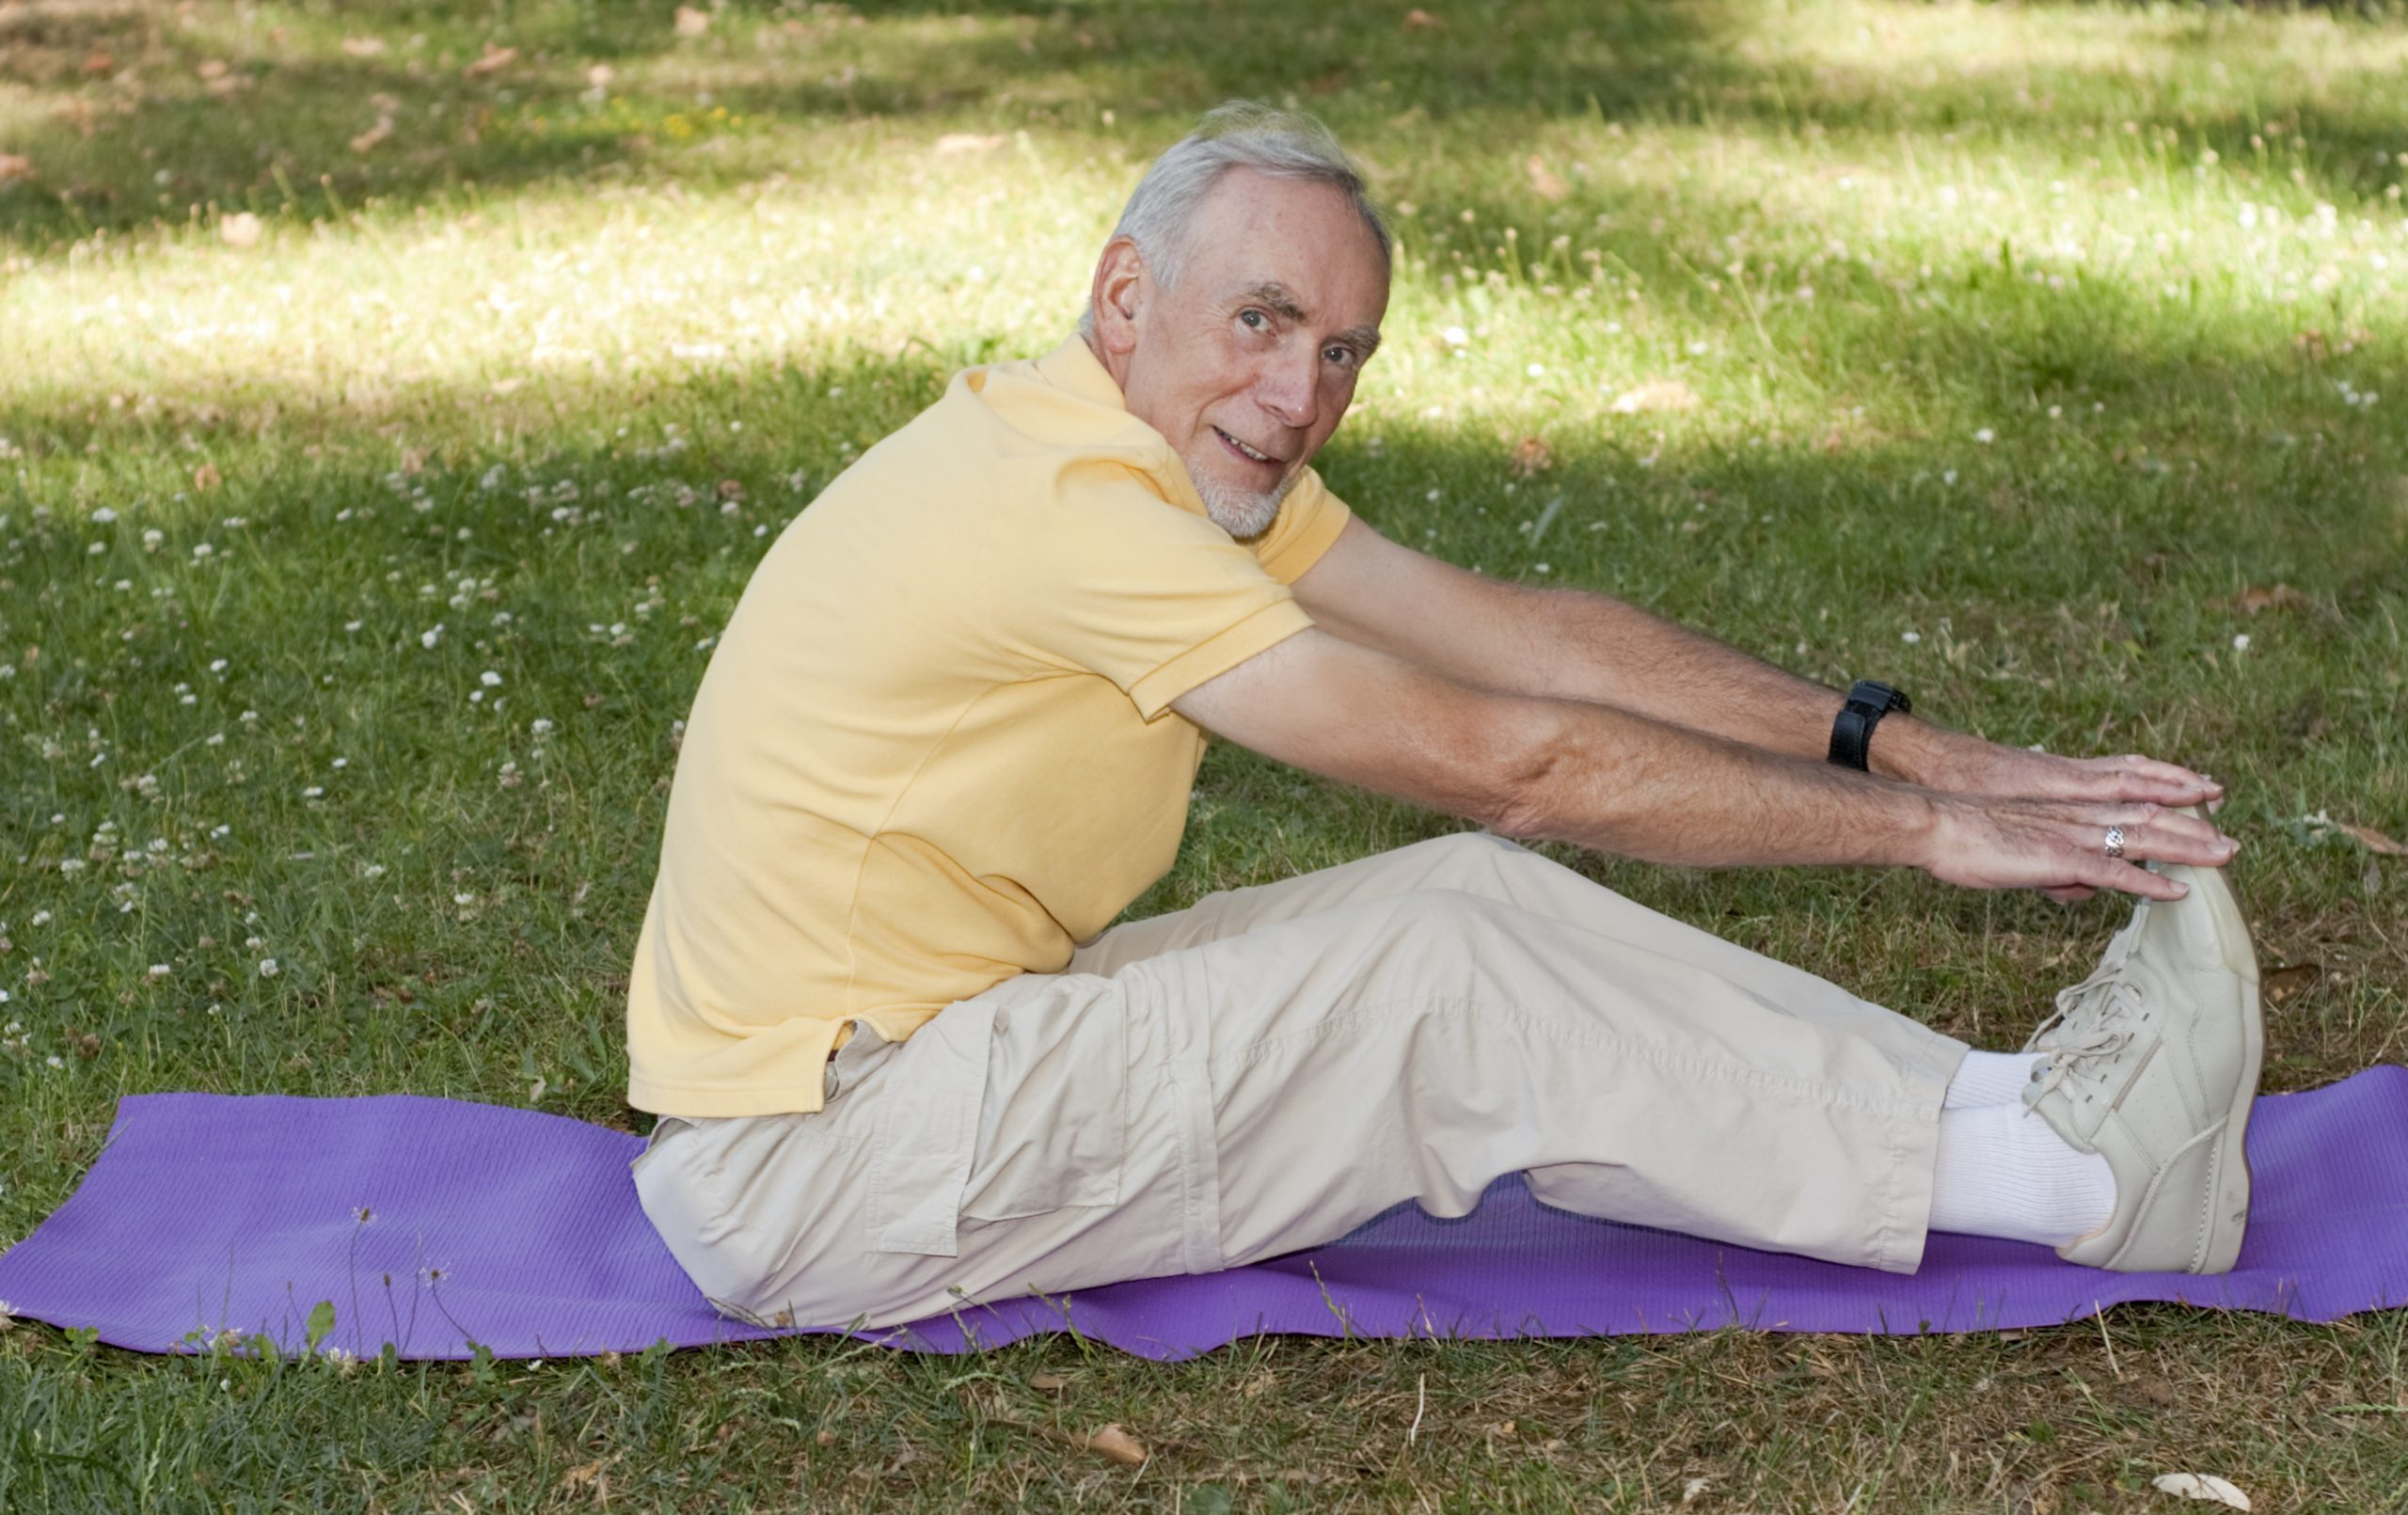 Gentleman with Prostate Cancer stretching in park